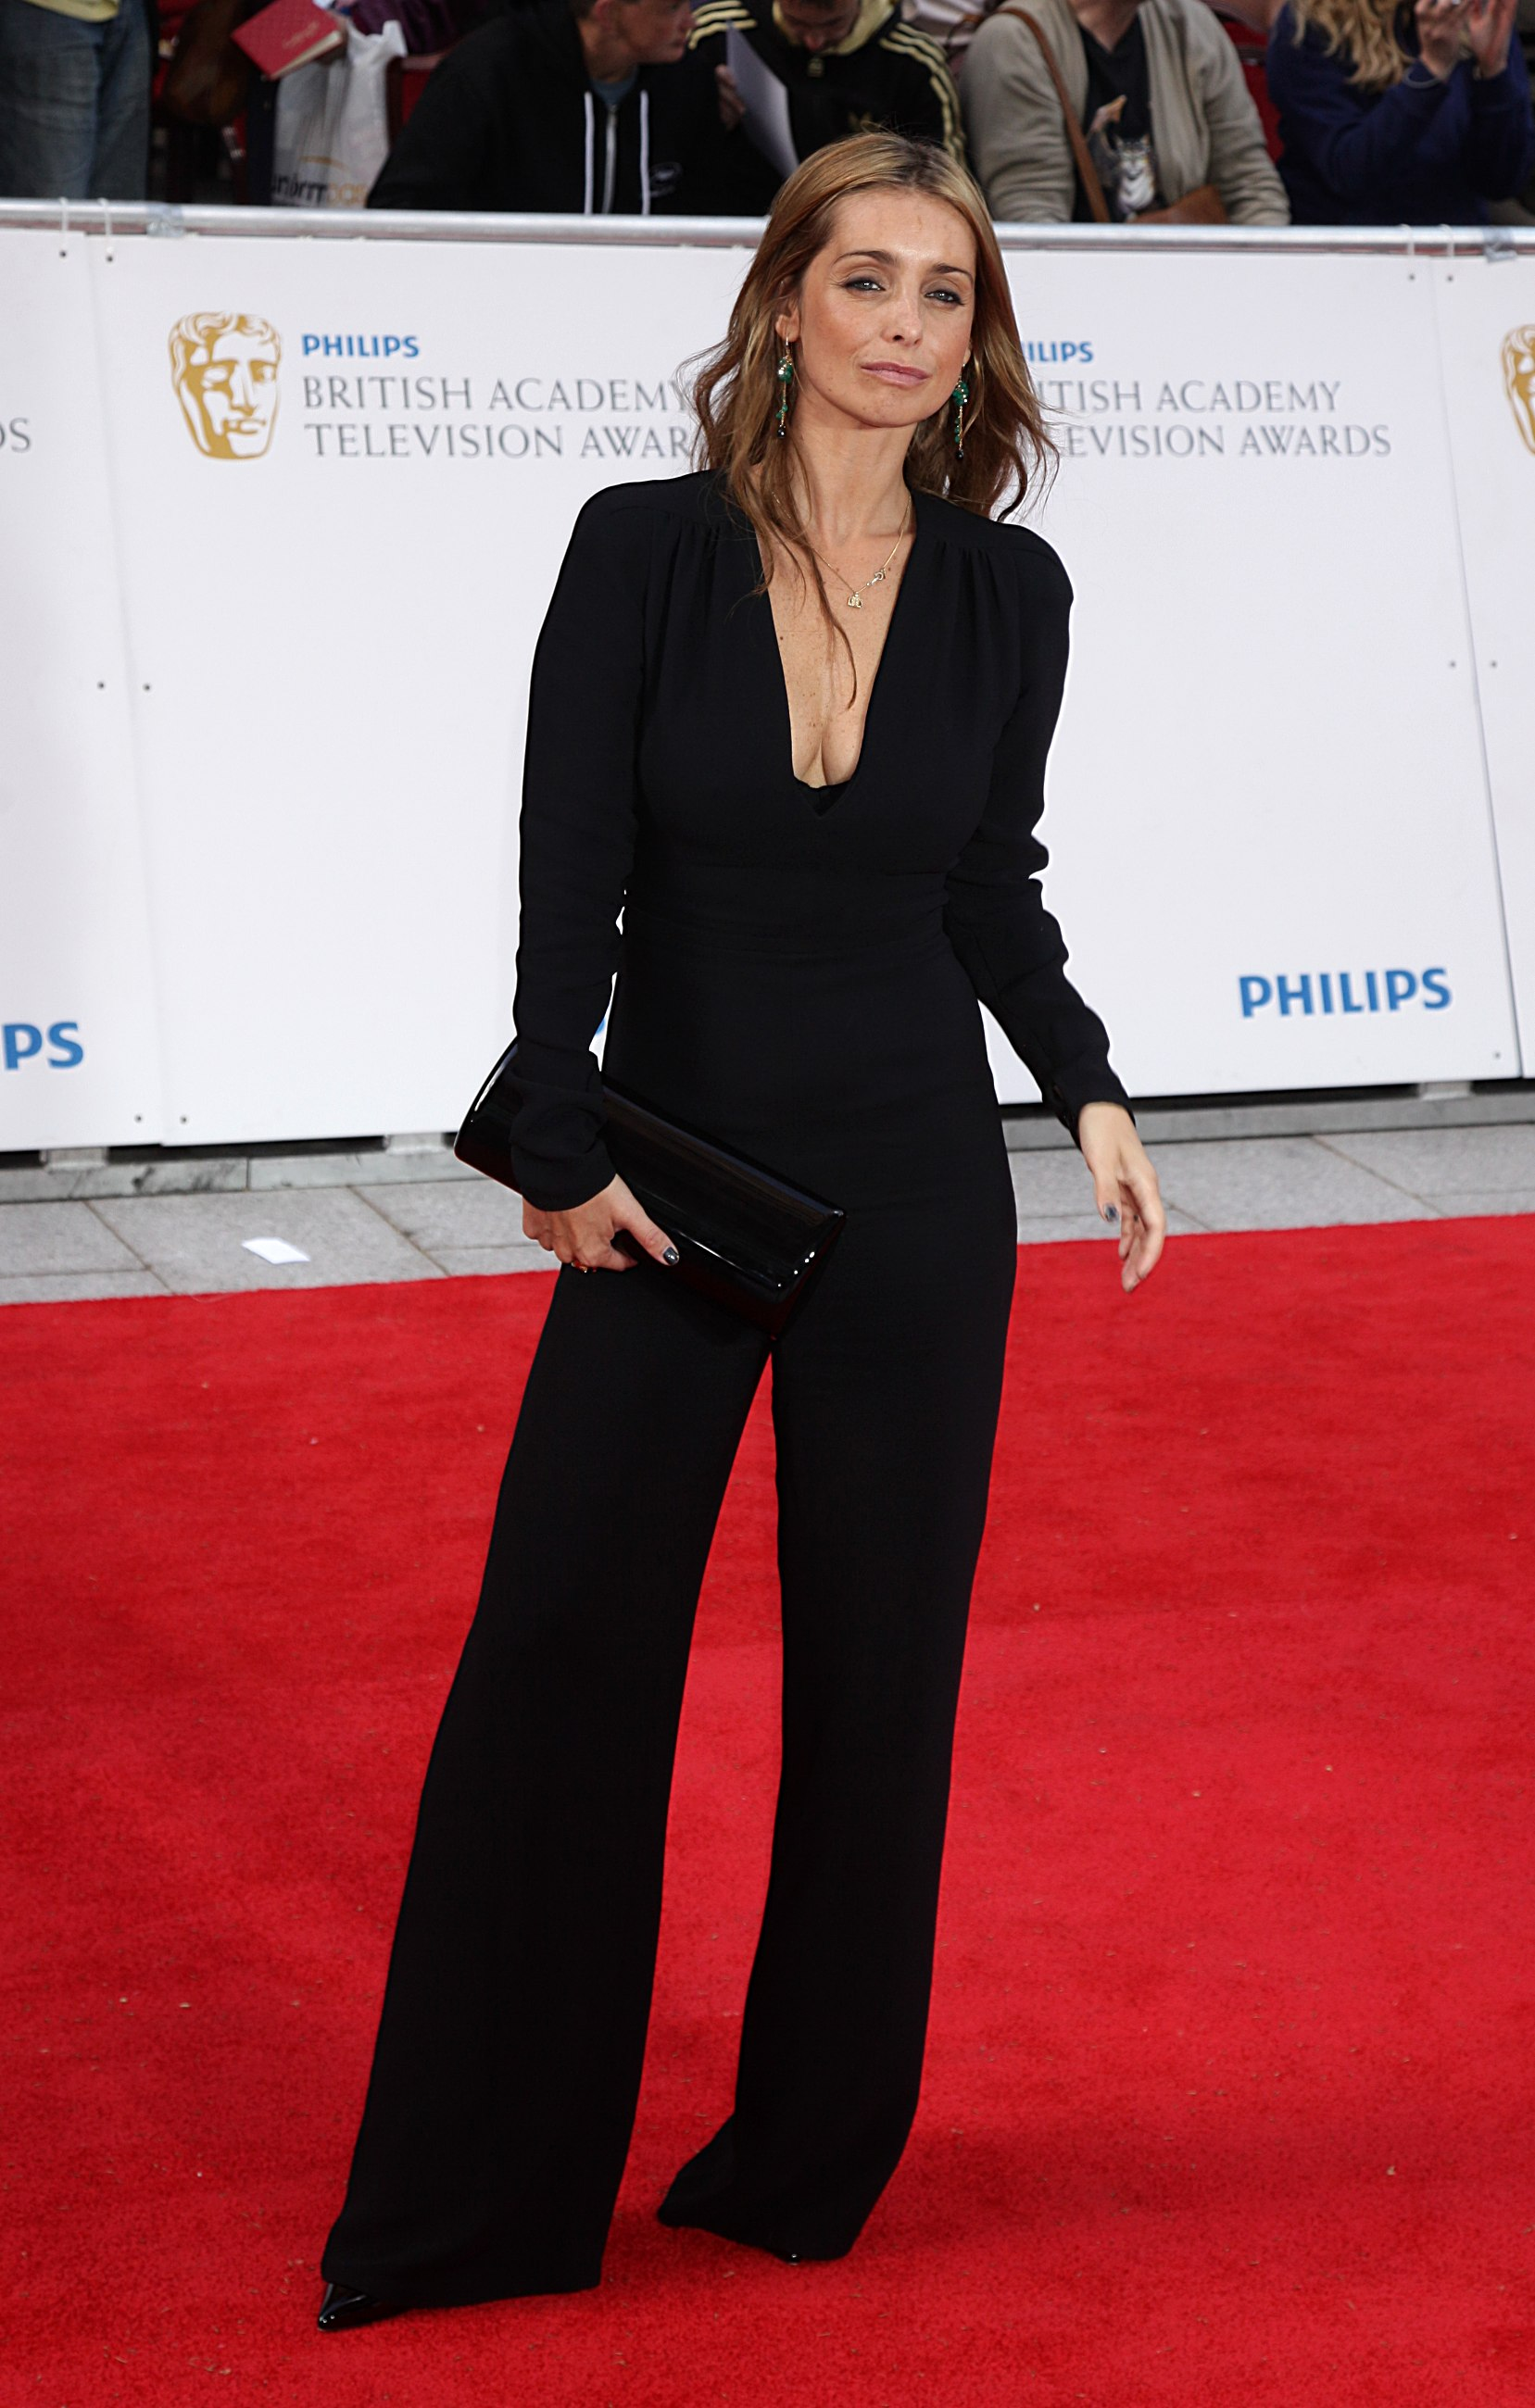 Louise Redknapp The Bafta Awards